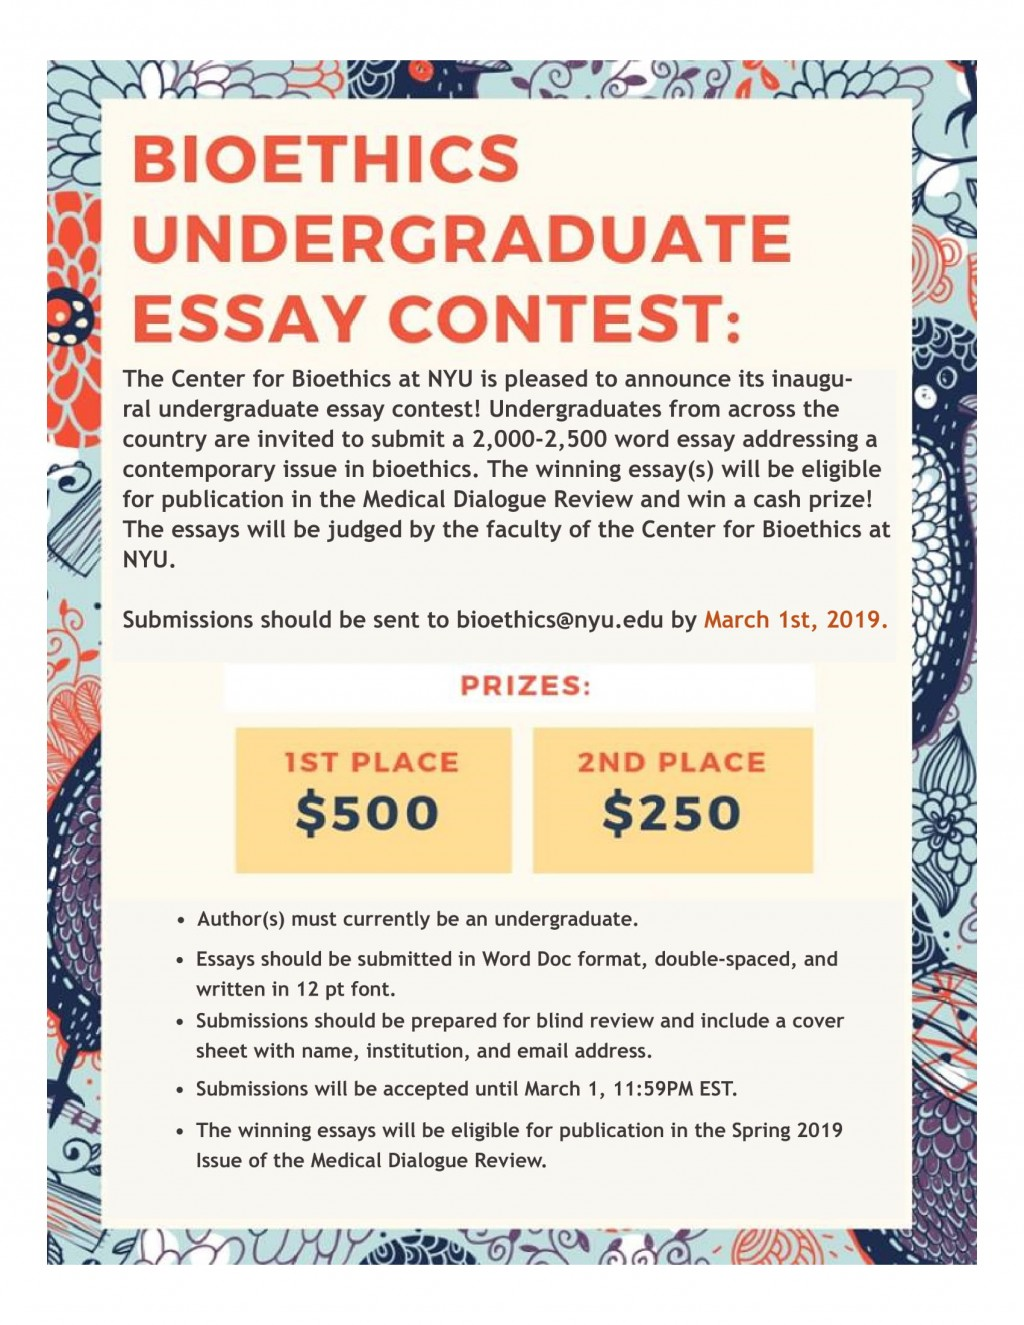 013 Essay Example Bioethics Contest Flier Why Unforgettable Nyu 2018 Stern Reddit Large